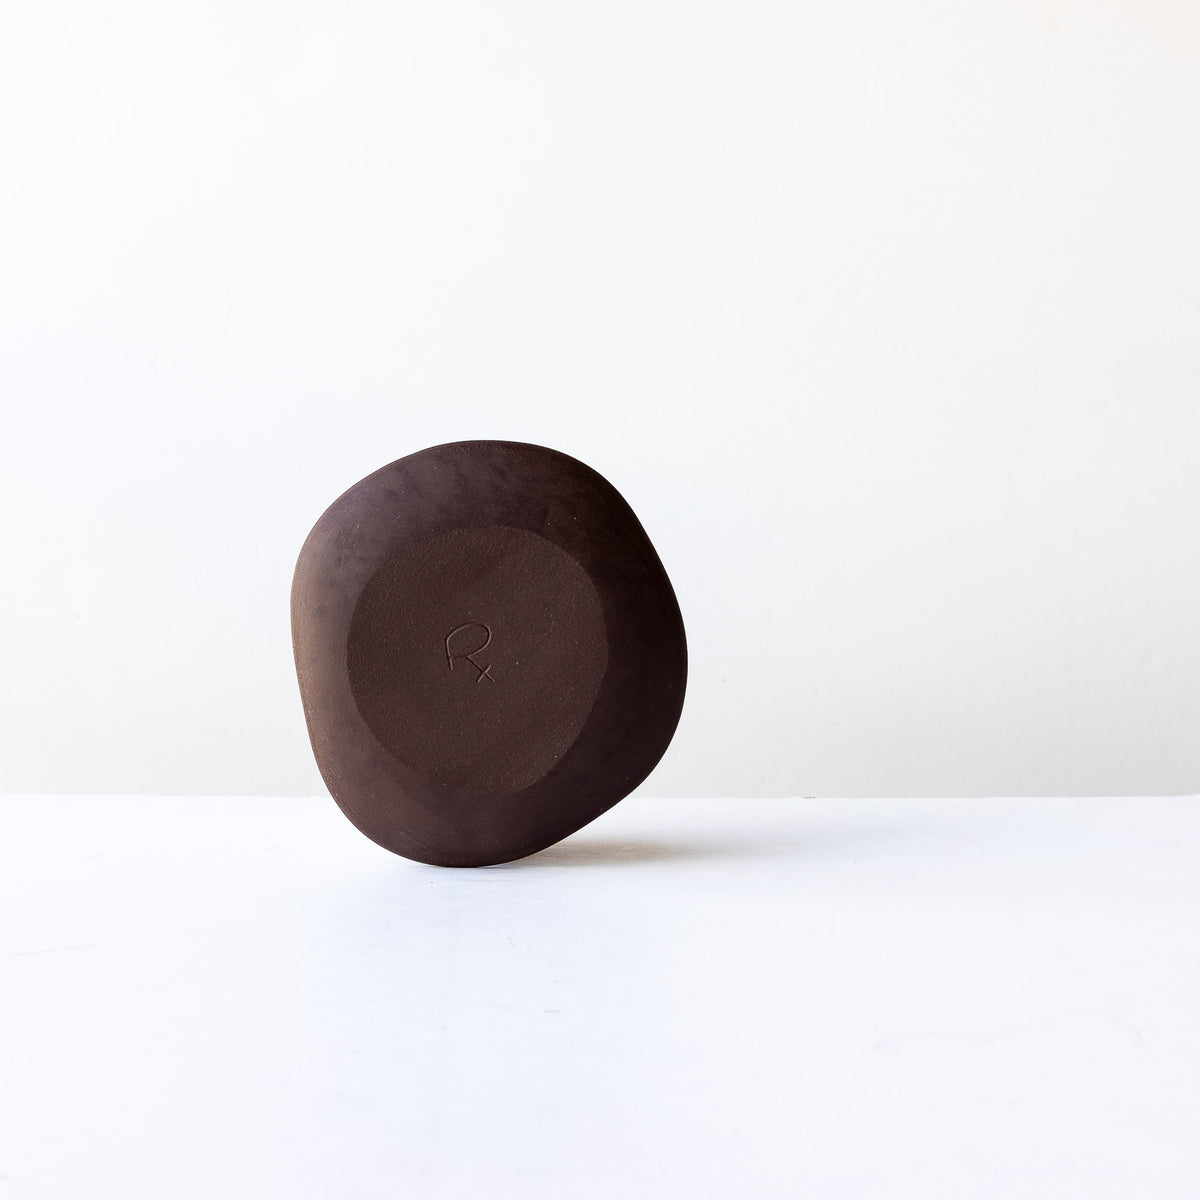 rear View - Handcrafted Organic Shaped Small Stoneware Plate - Sold by Chic & Basta